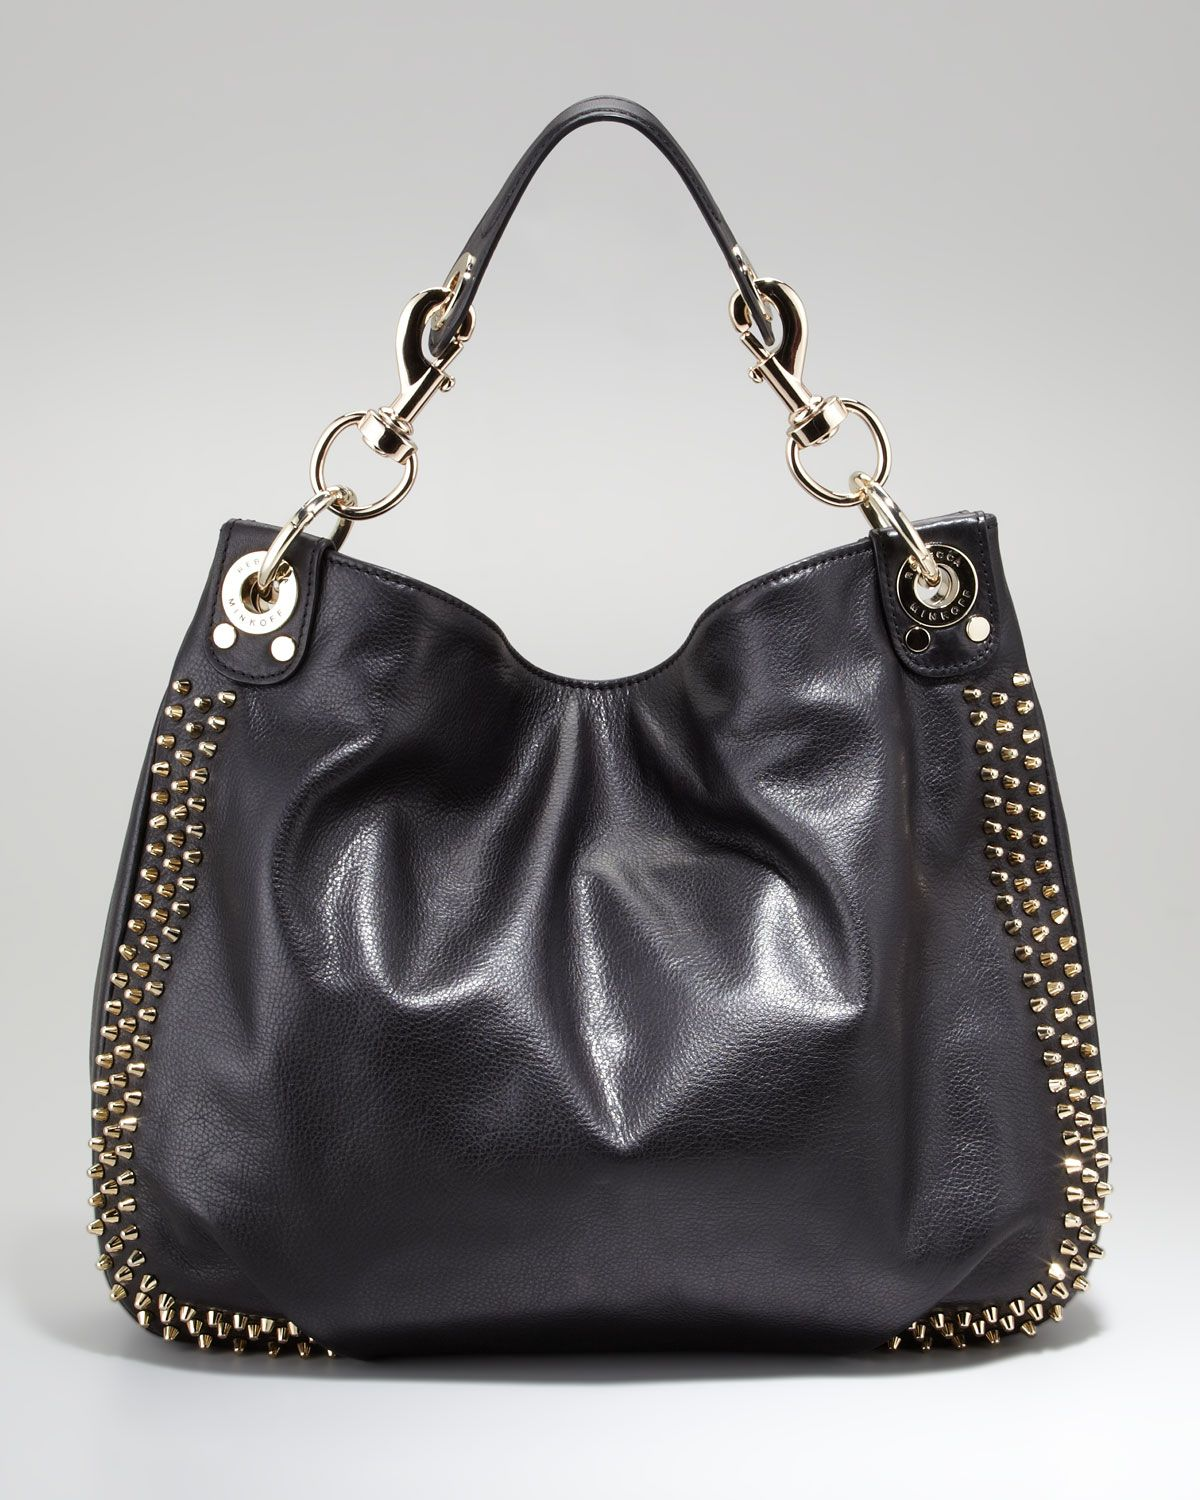 http://harrislove.com/rebecca-minkoff-luscious-mini-studded-hobo ...